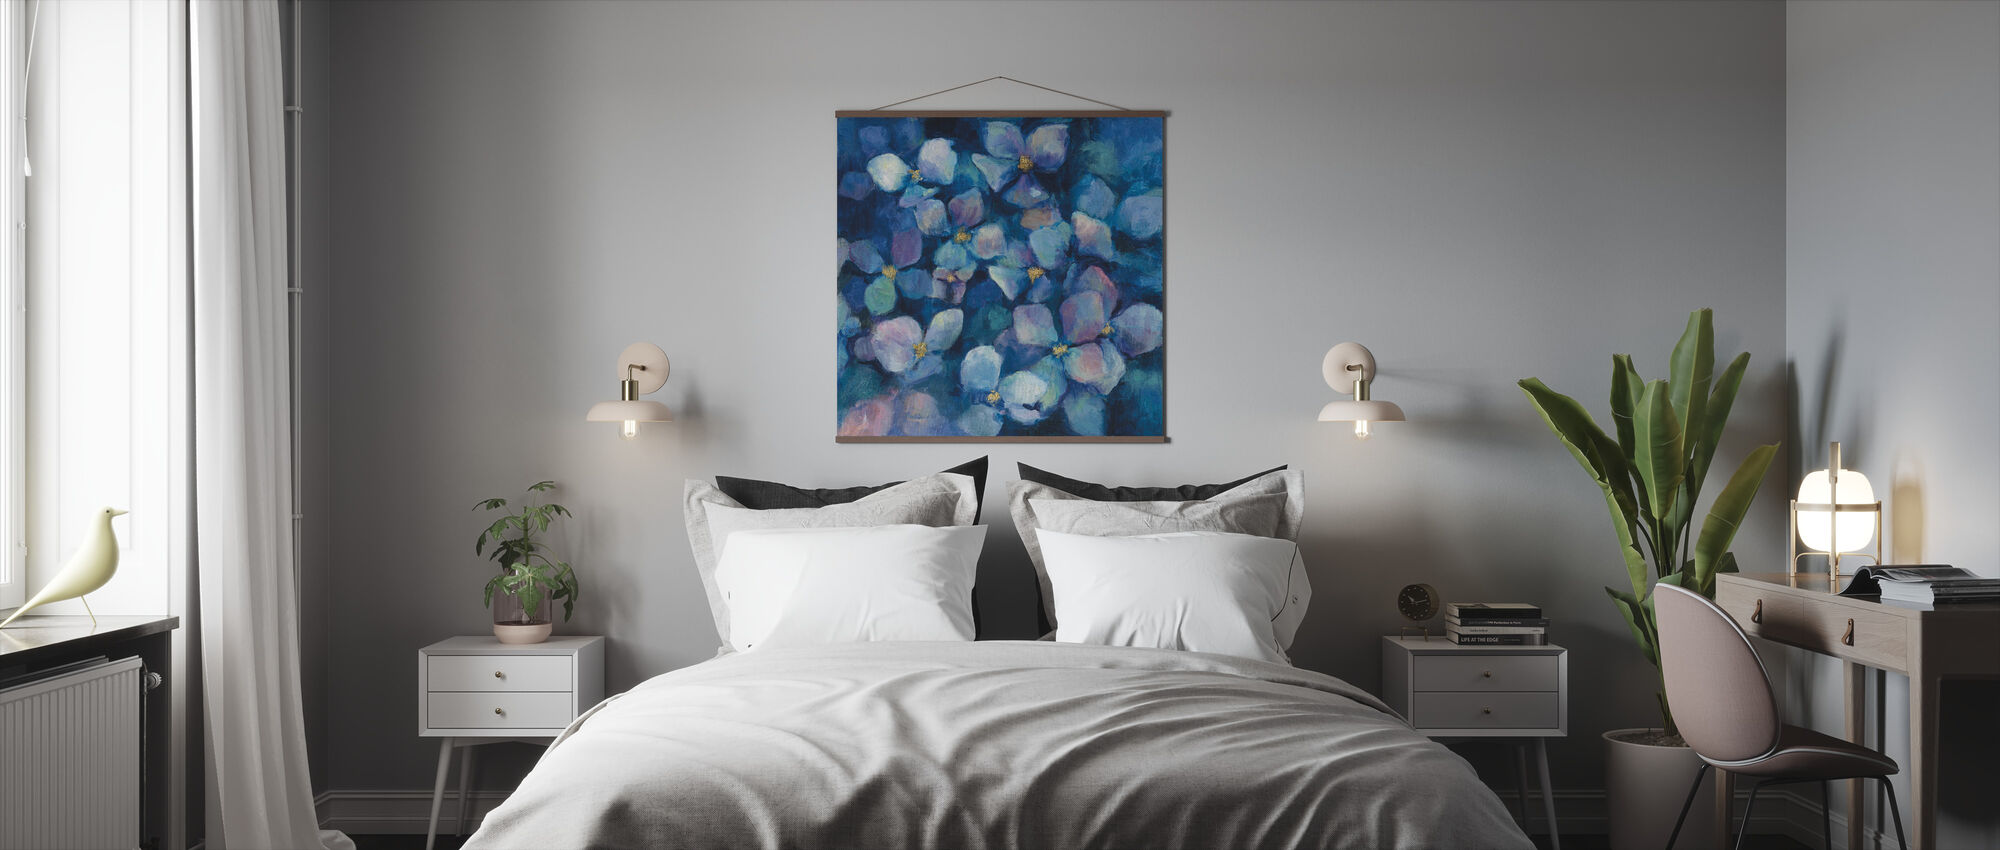 Midnight Blue Hydrangeas with Gold - Poster - Bedroom